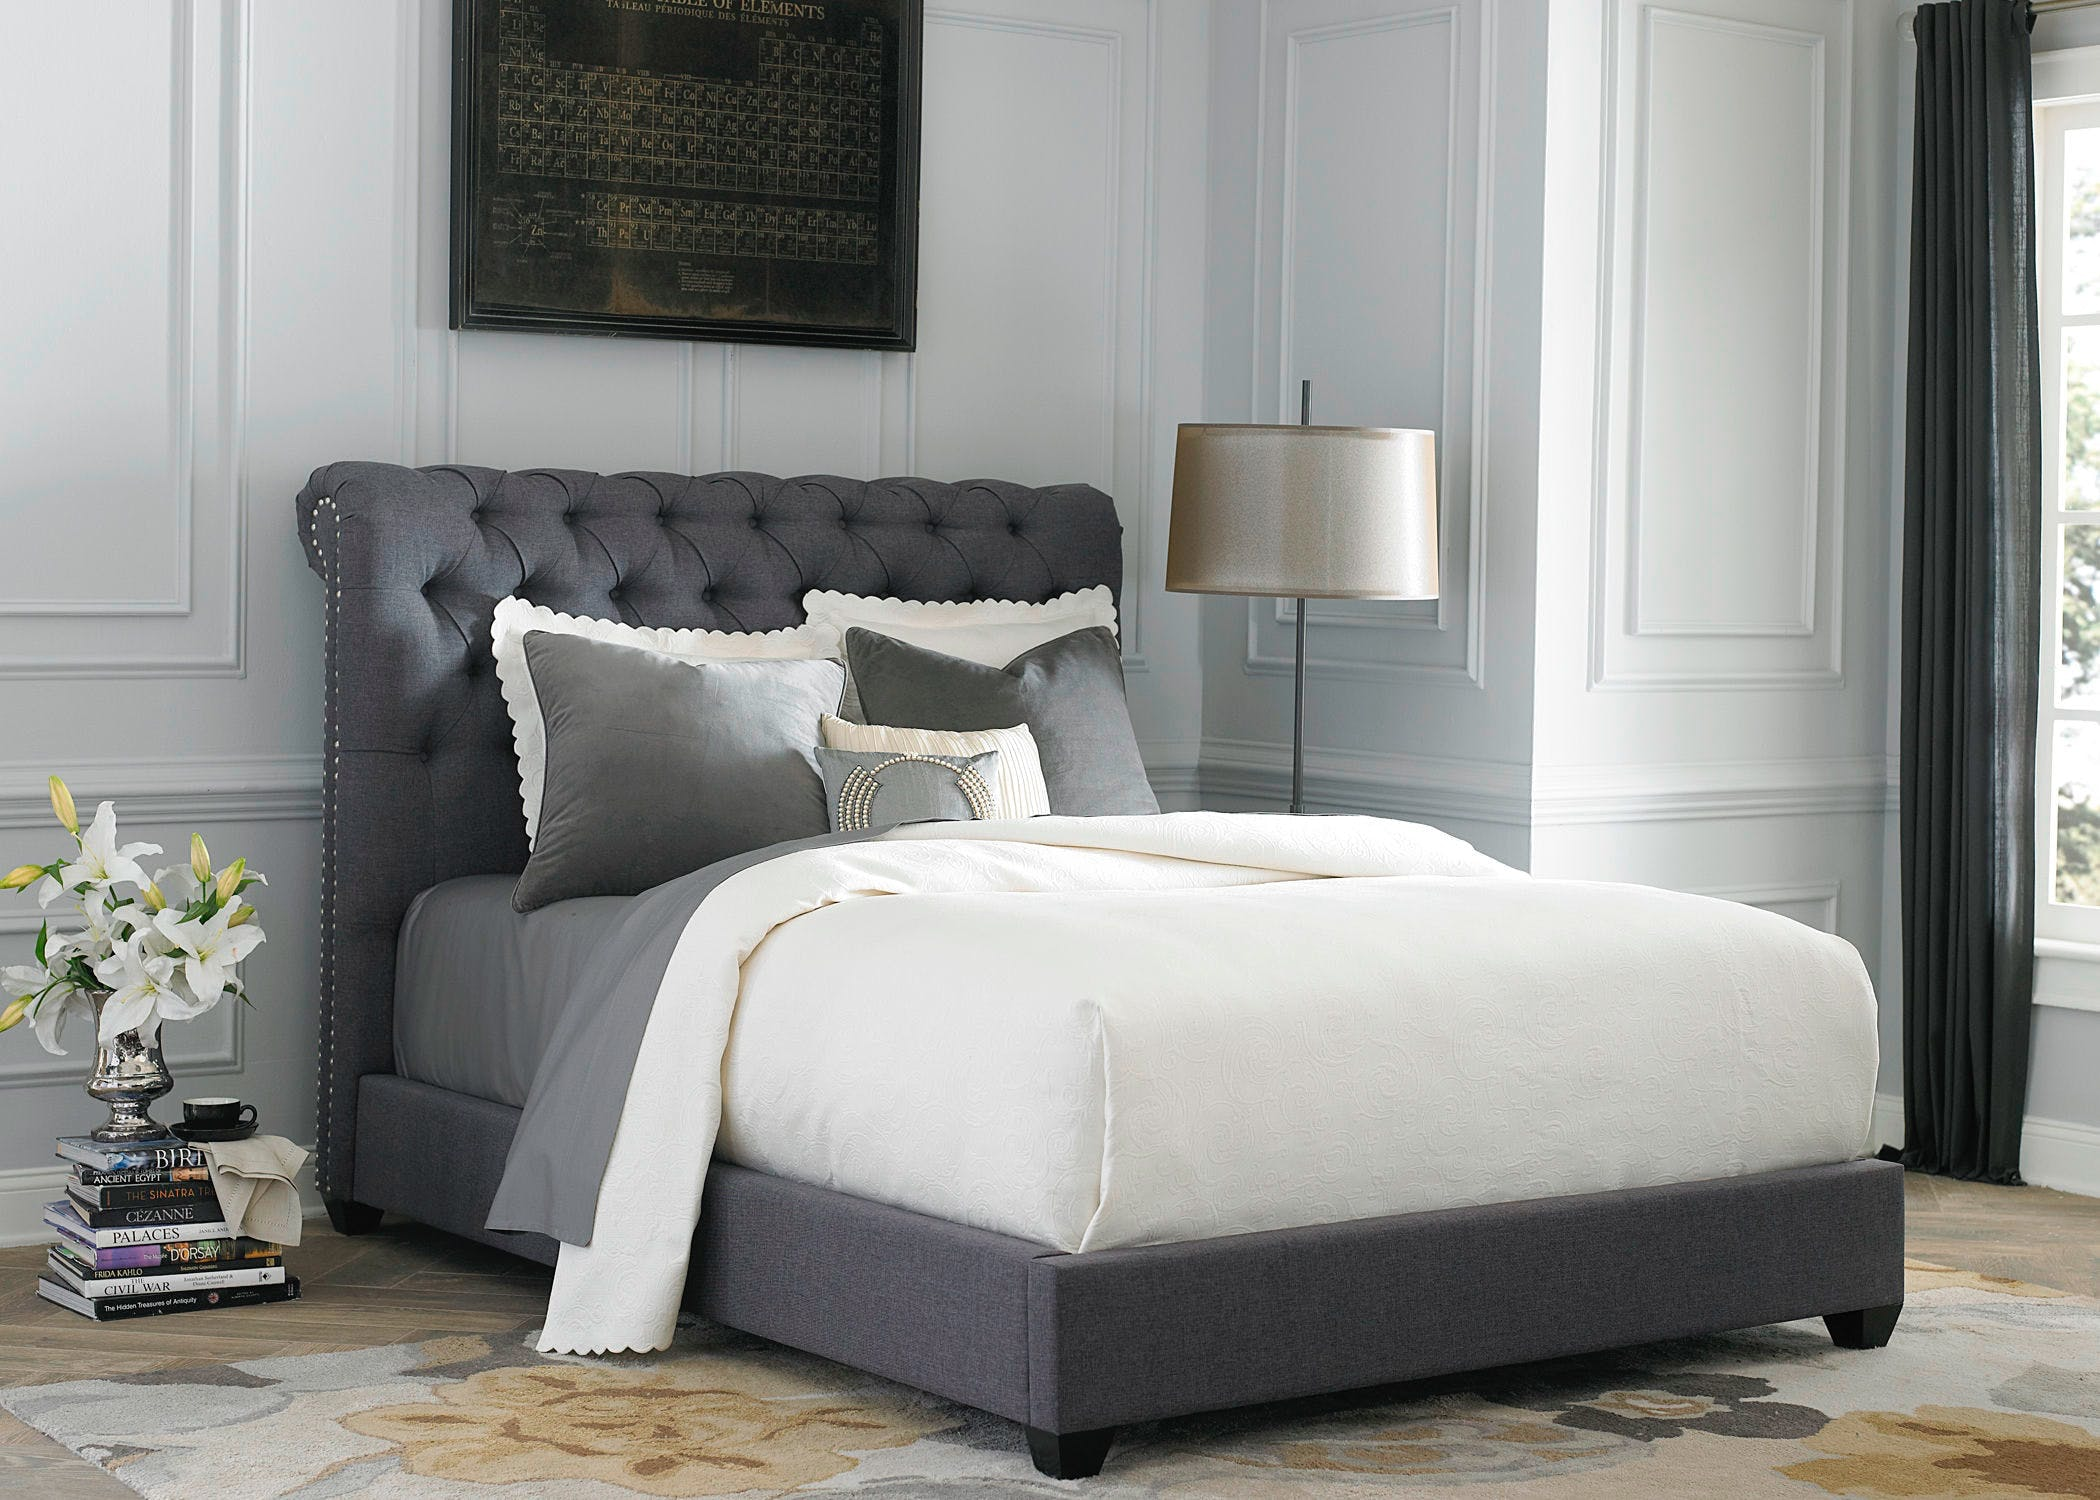 King Size Grey Tufted Headboard